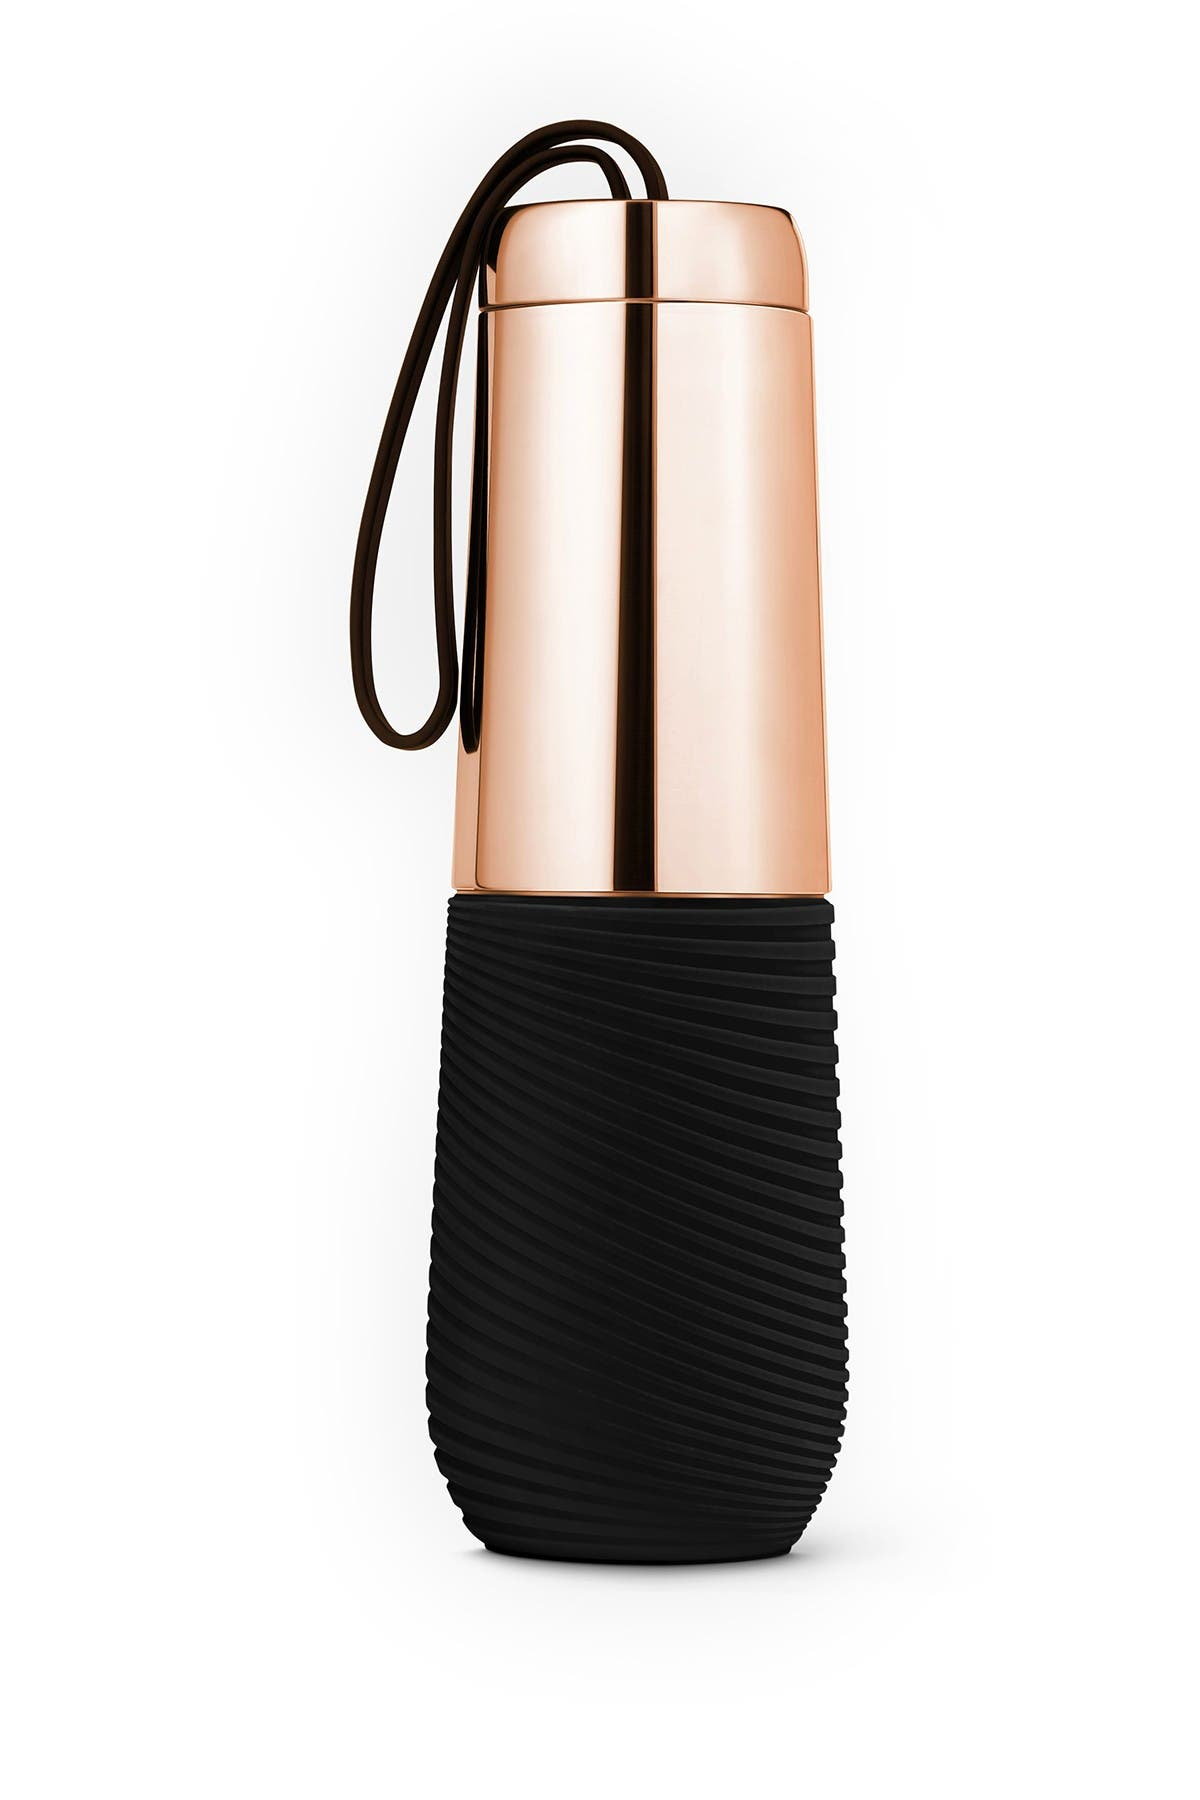 Image of ART AND COOK 16 oz. Water Double Wall Stainless Steel Water Bottle with Silicone Grip - Rose Gold